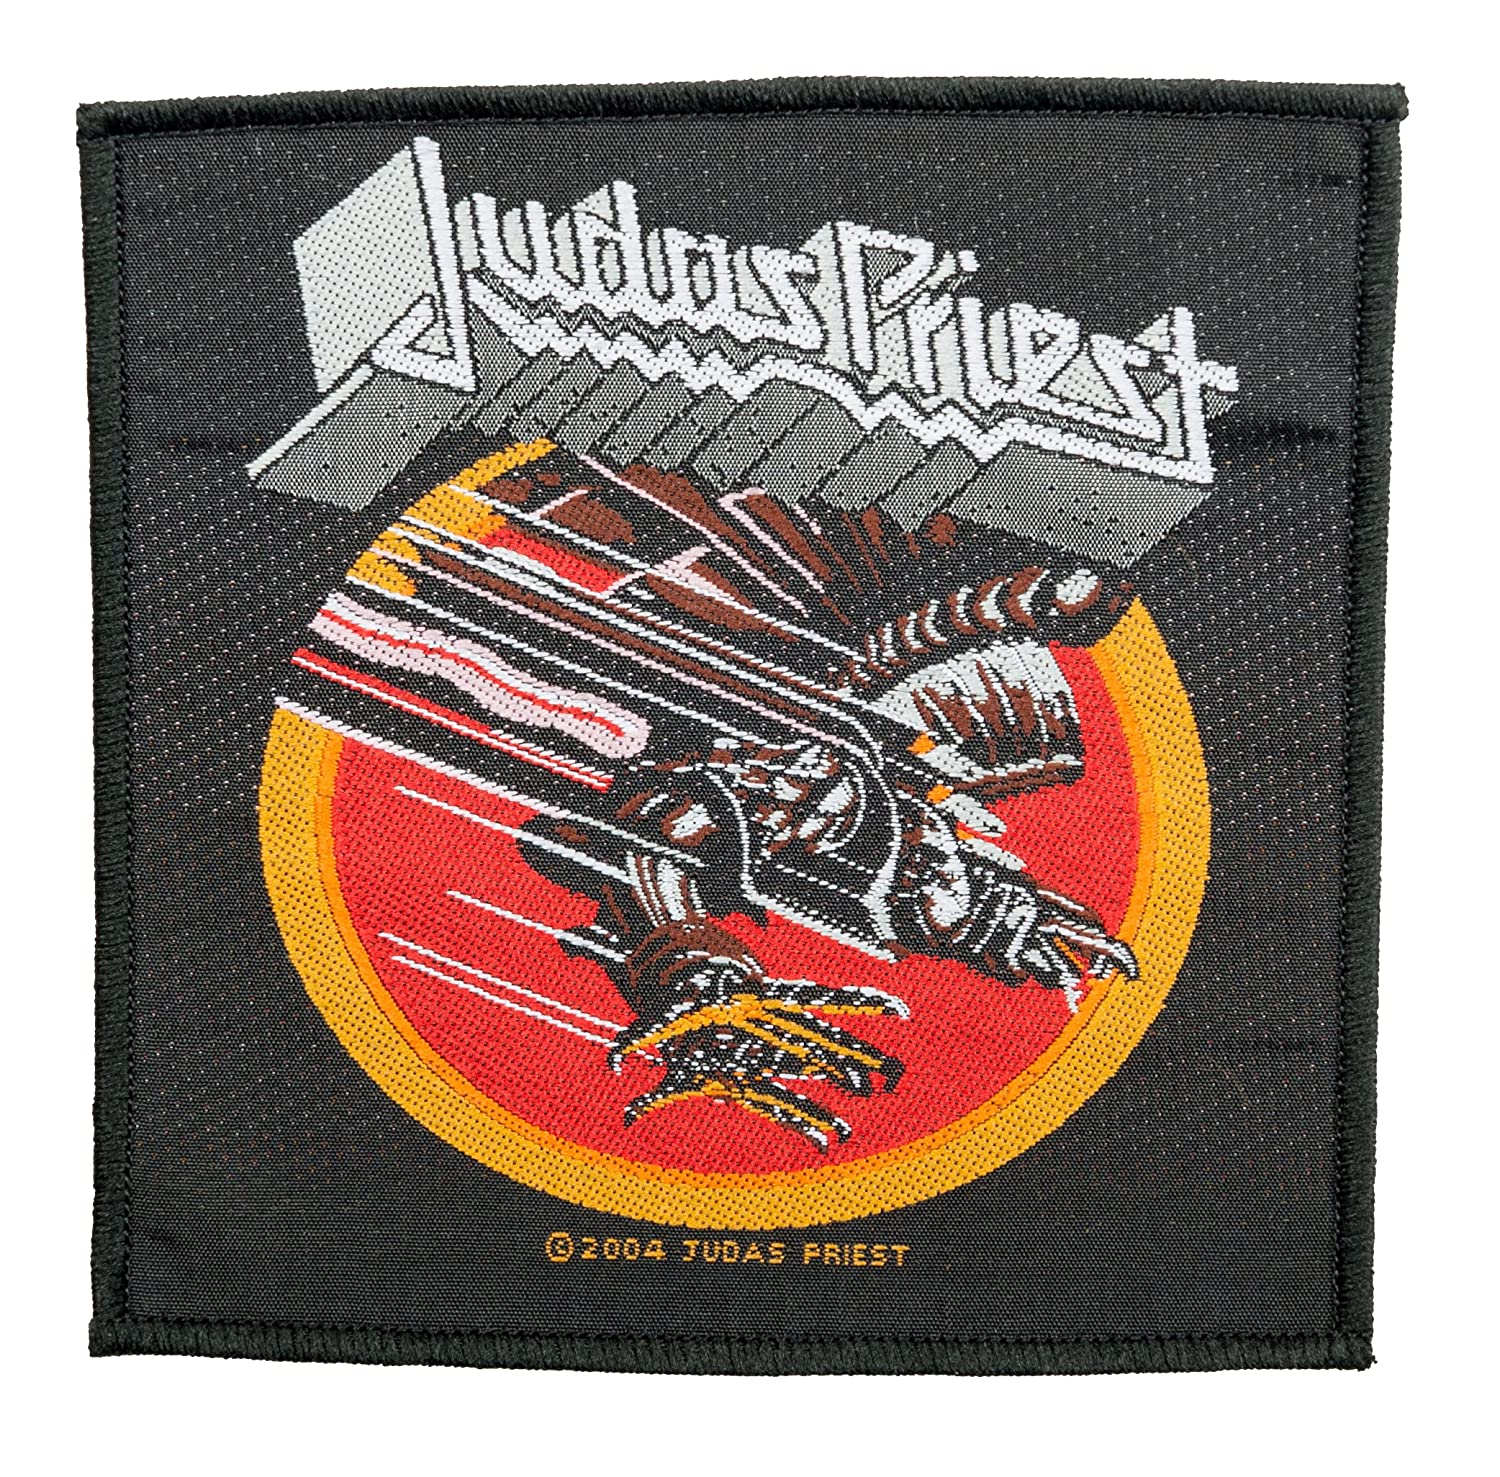 Judas Priest Screaming For Vengeance tejido y licencia oficial Parche